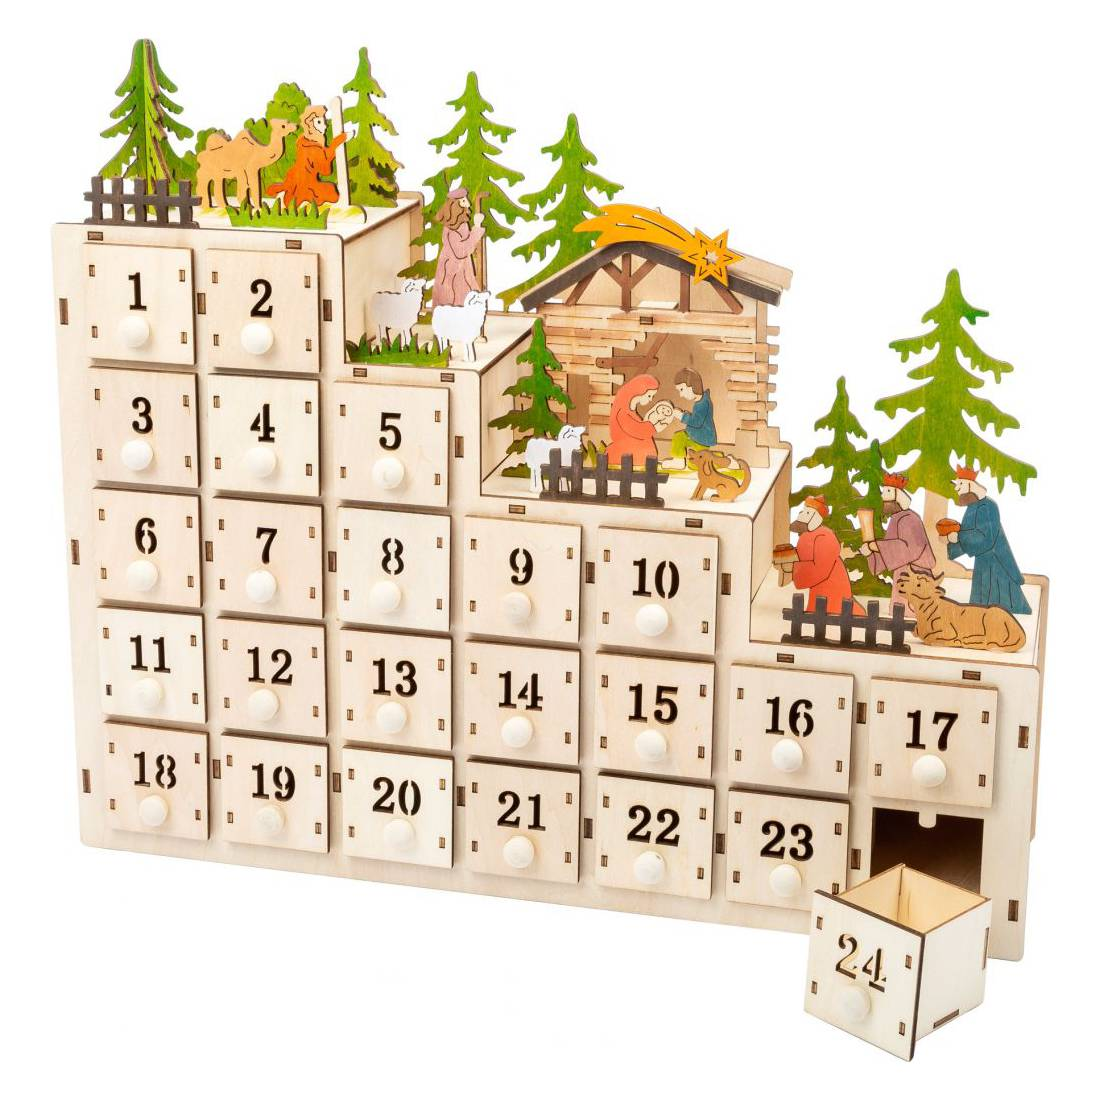 11392_small_foot_legler_adventskalender_krippe_bel.jpg